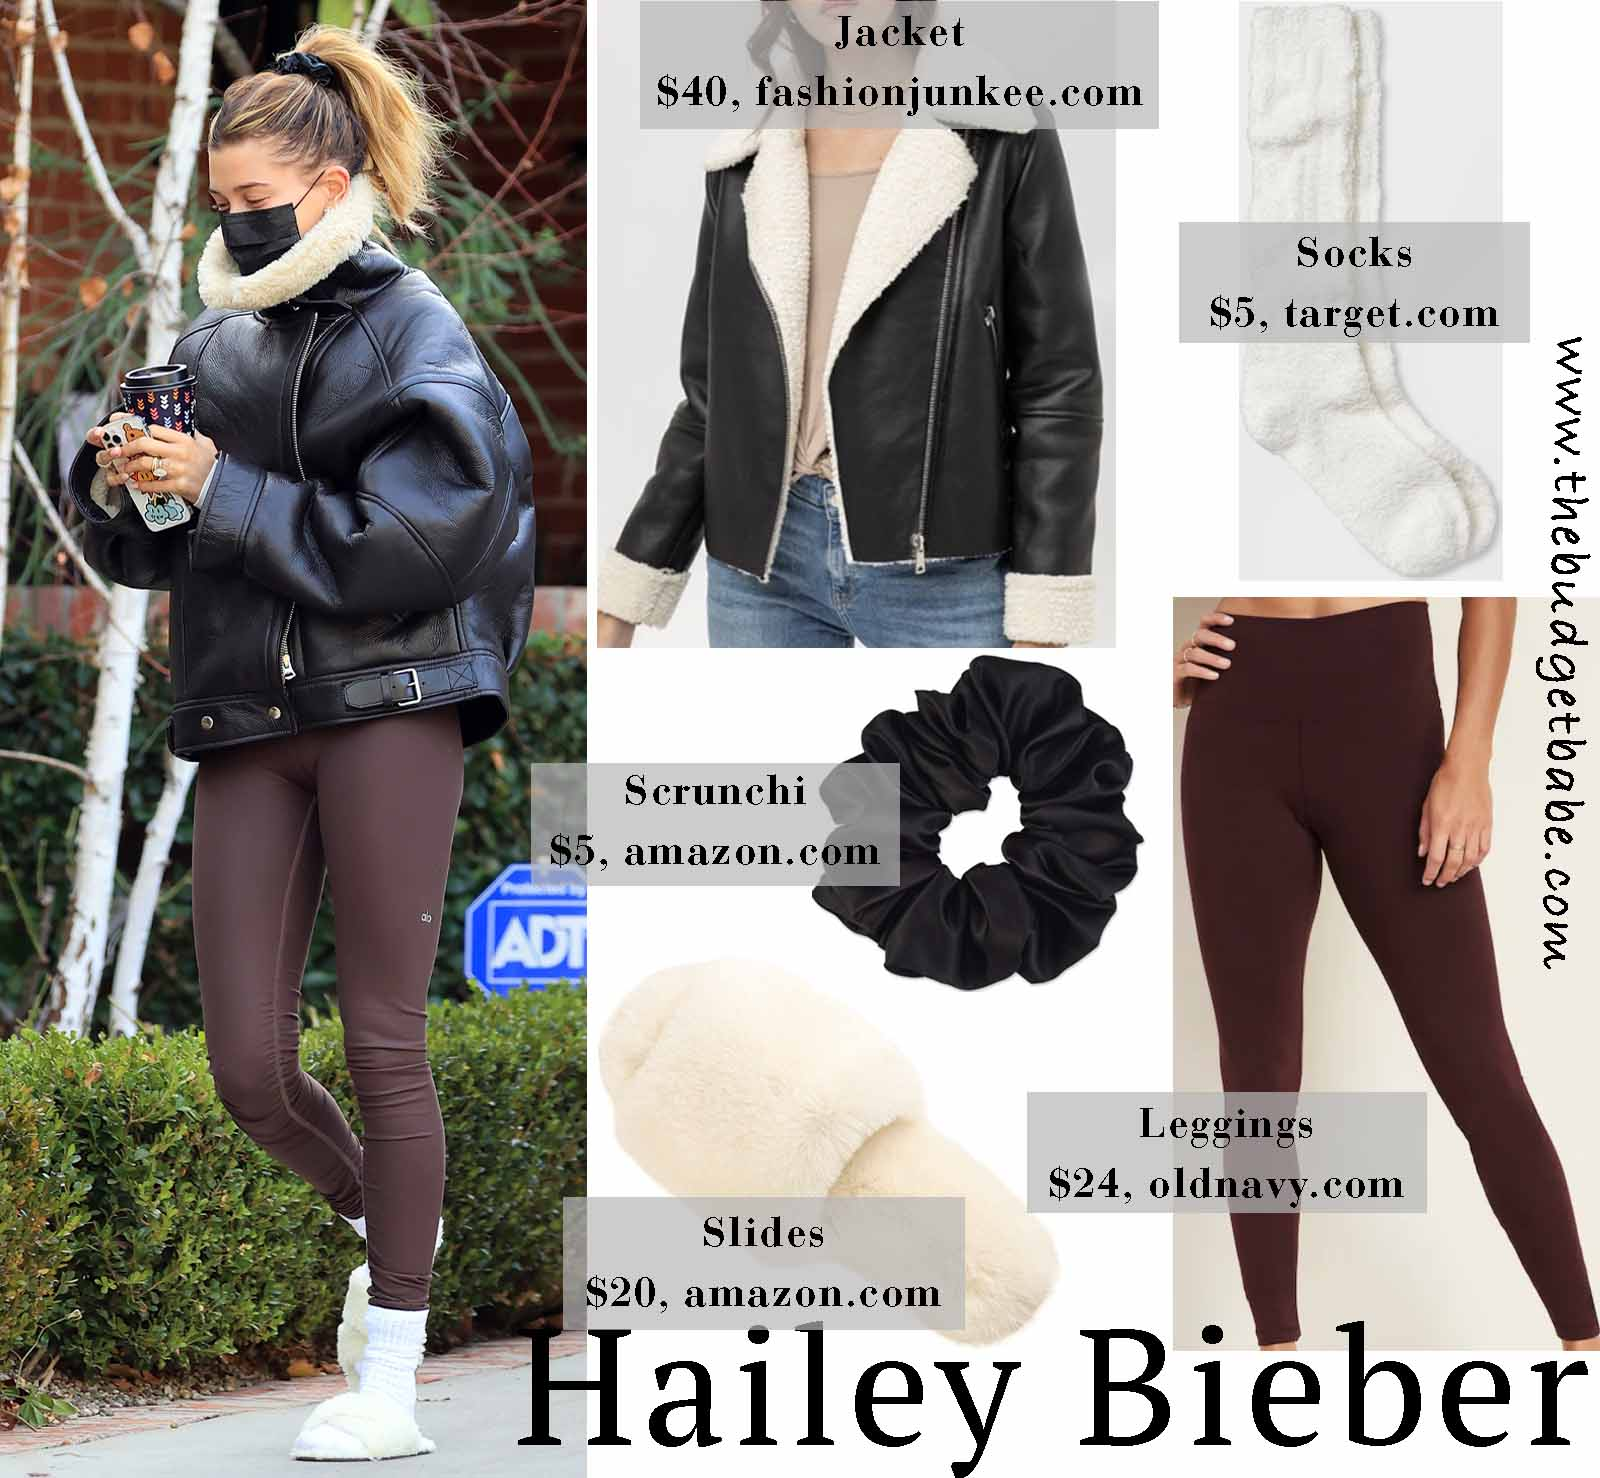 Hailey's jacket is our new favorite!